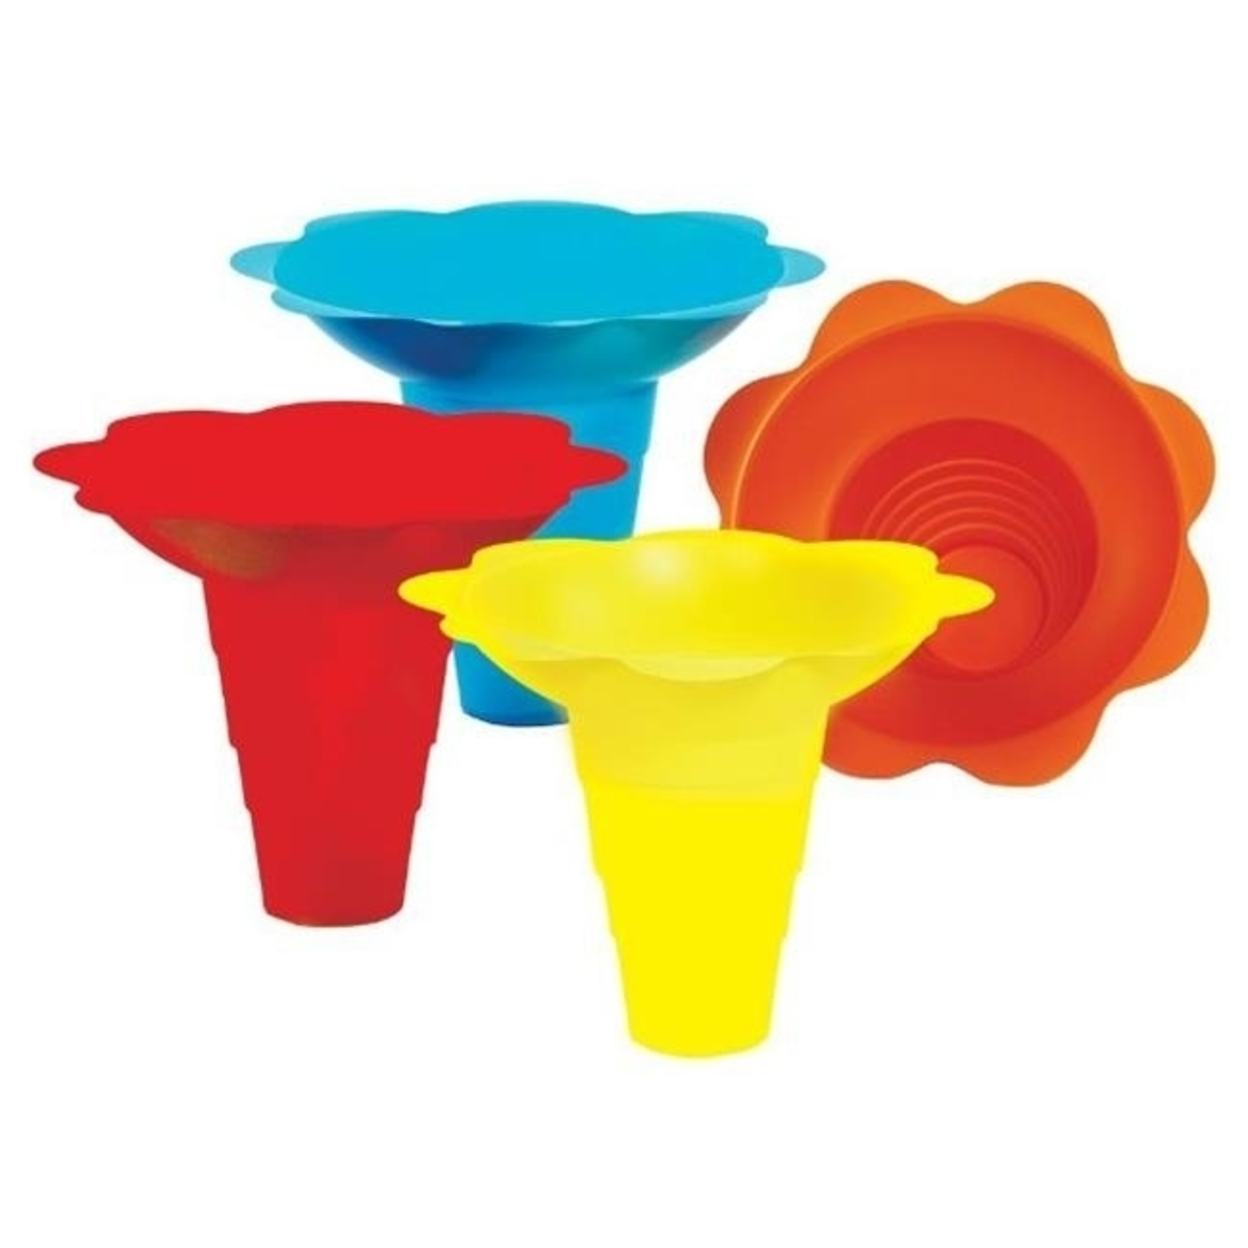 Paragon - Manufactured Fun 6504 Large Flower Drip Tray Cups - Multicolor 596e282d2a00e479d1303fc5